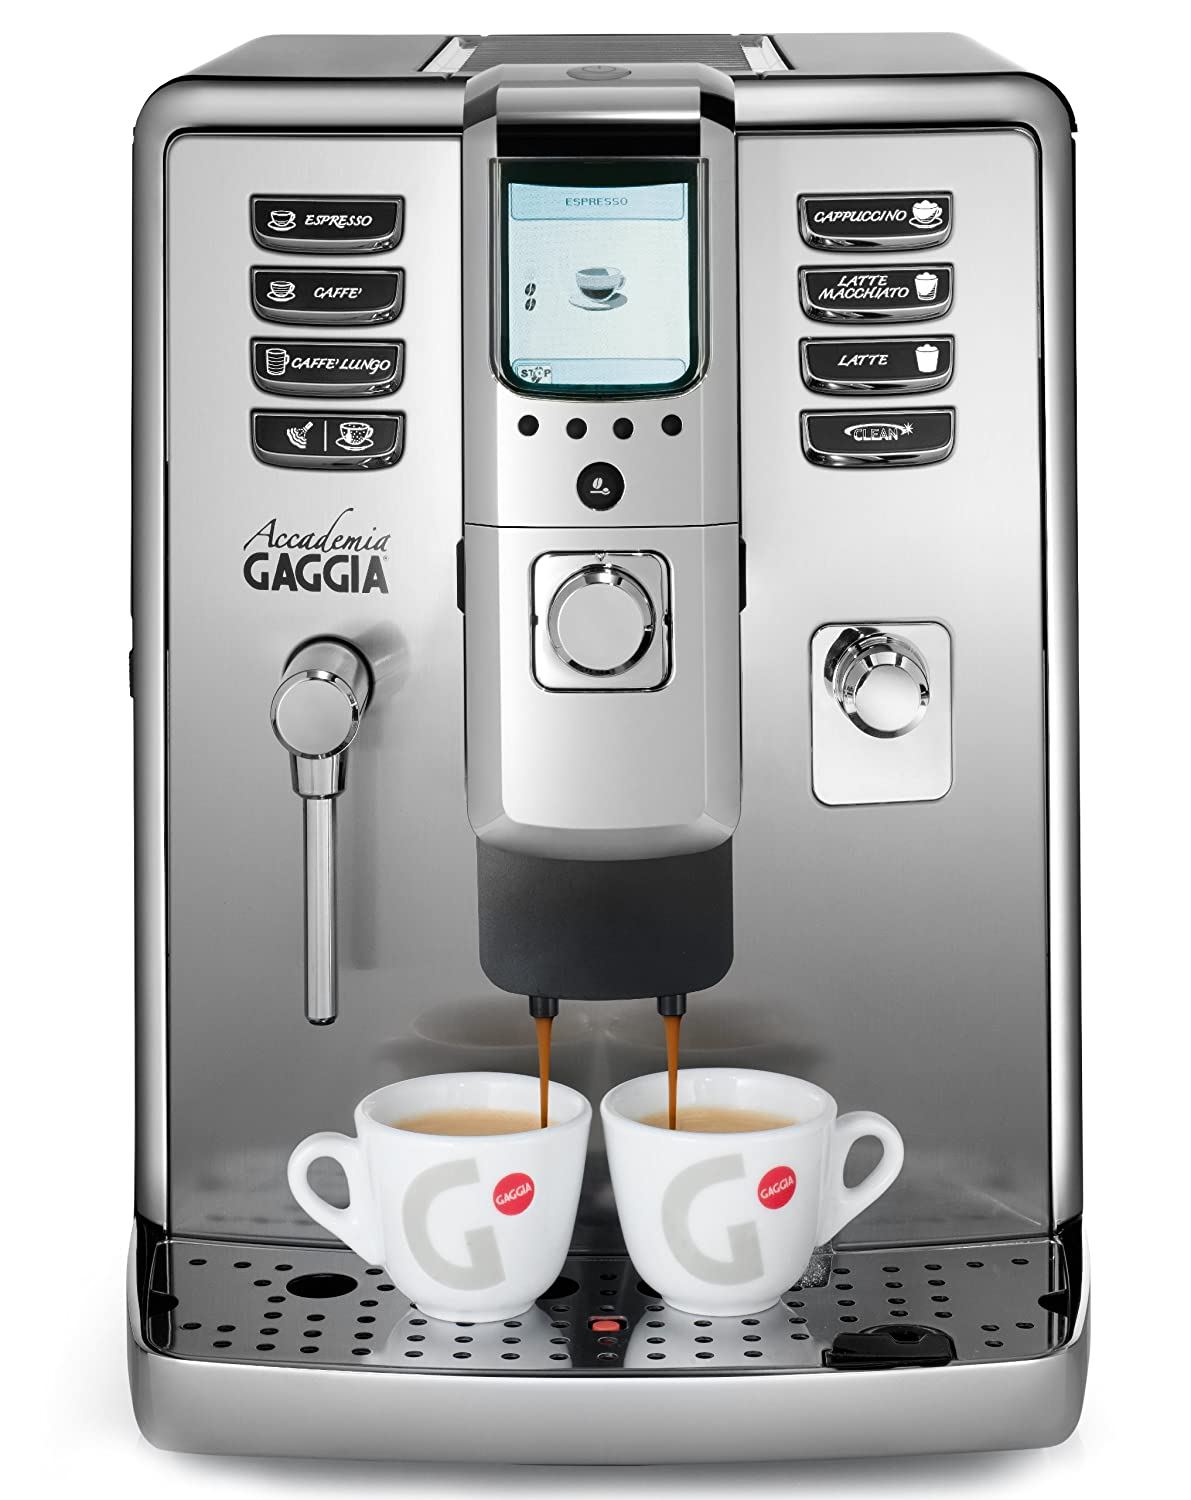 High Quality Gaggia Accademia RI9702/04 Bean To Cup Espresso And Cappuccino Coffee  Machine   Silver: Amazon.co.uk: Kitchen U0026 Home Great Pictures